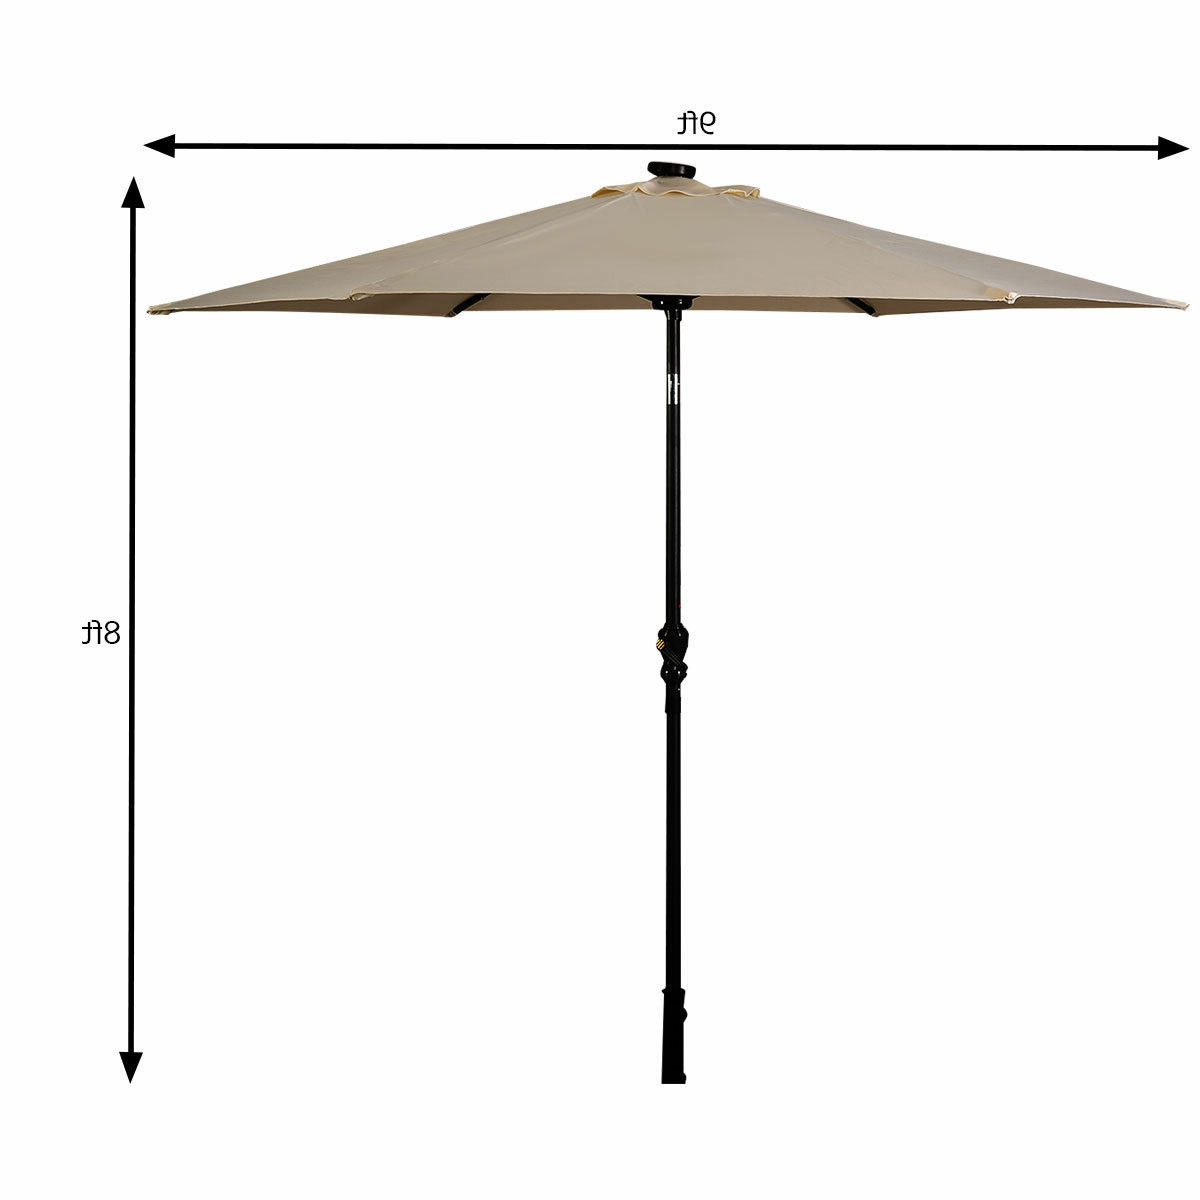 Latest Details About Freeport Park Exmouth 9' Market Umbrella Pertaining To Leachville Market Umbrellas (View 1 of 20)